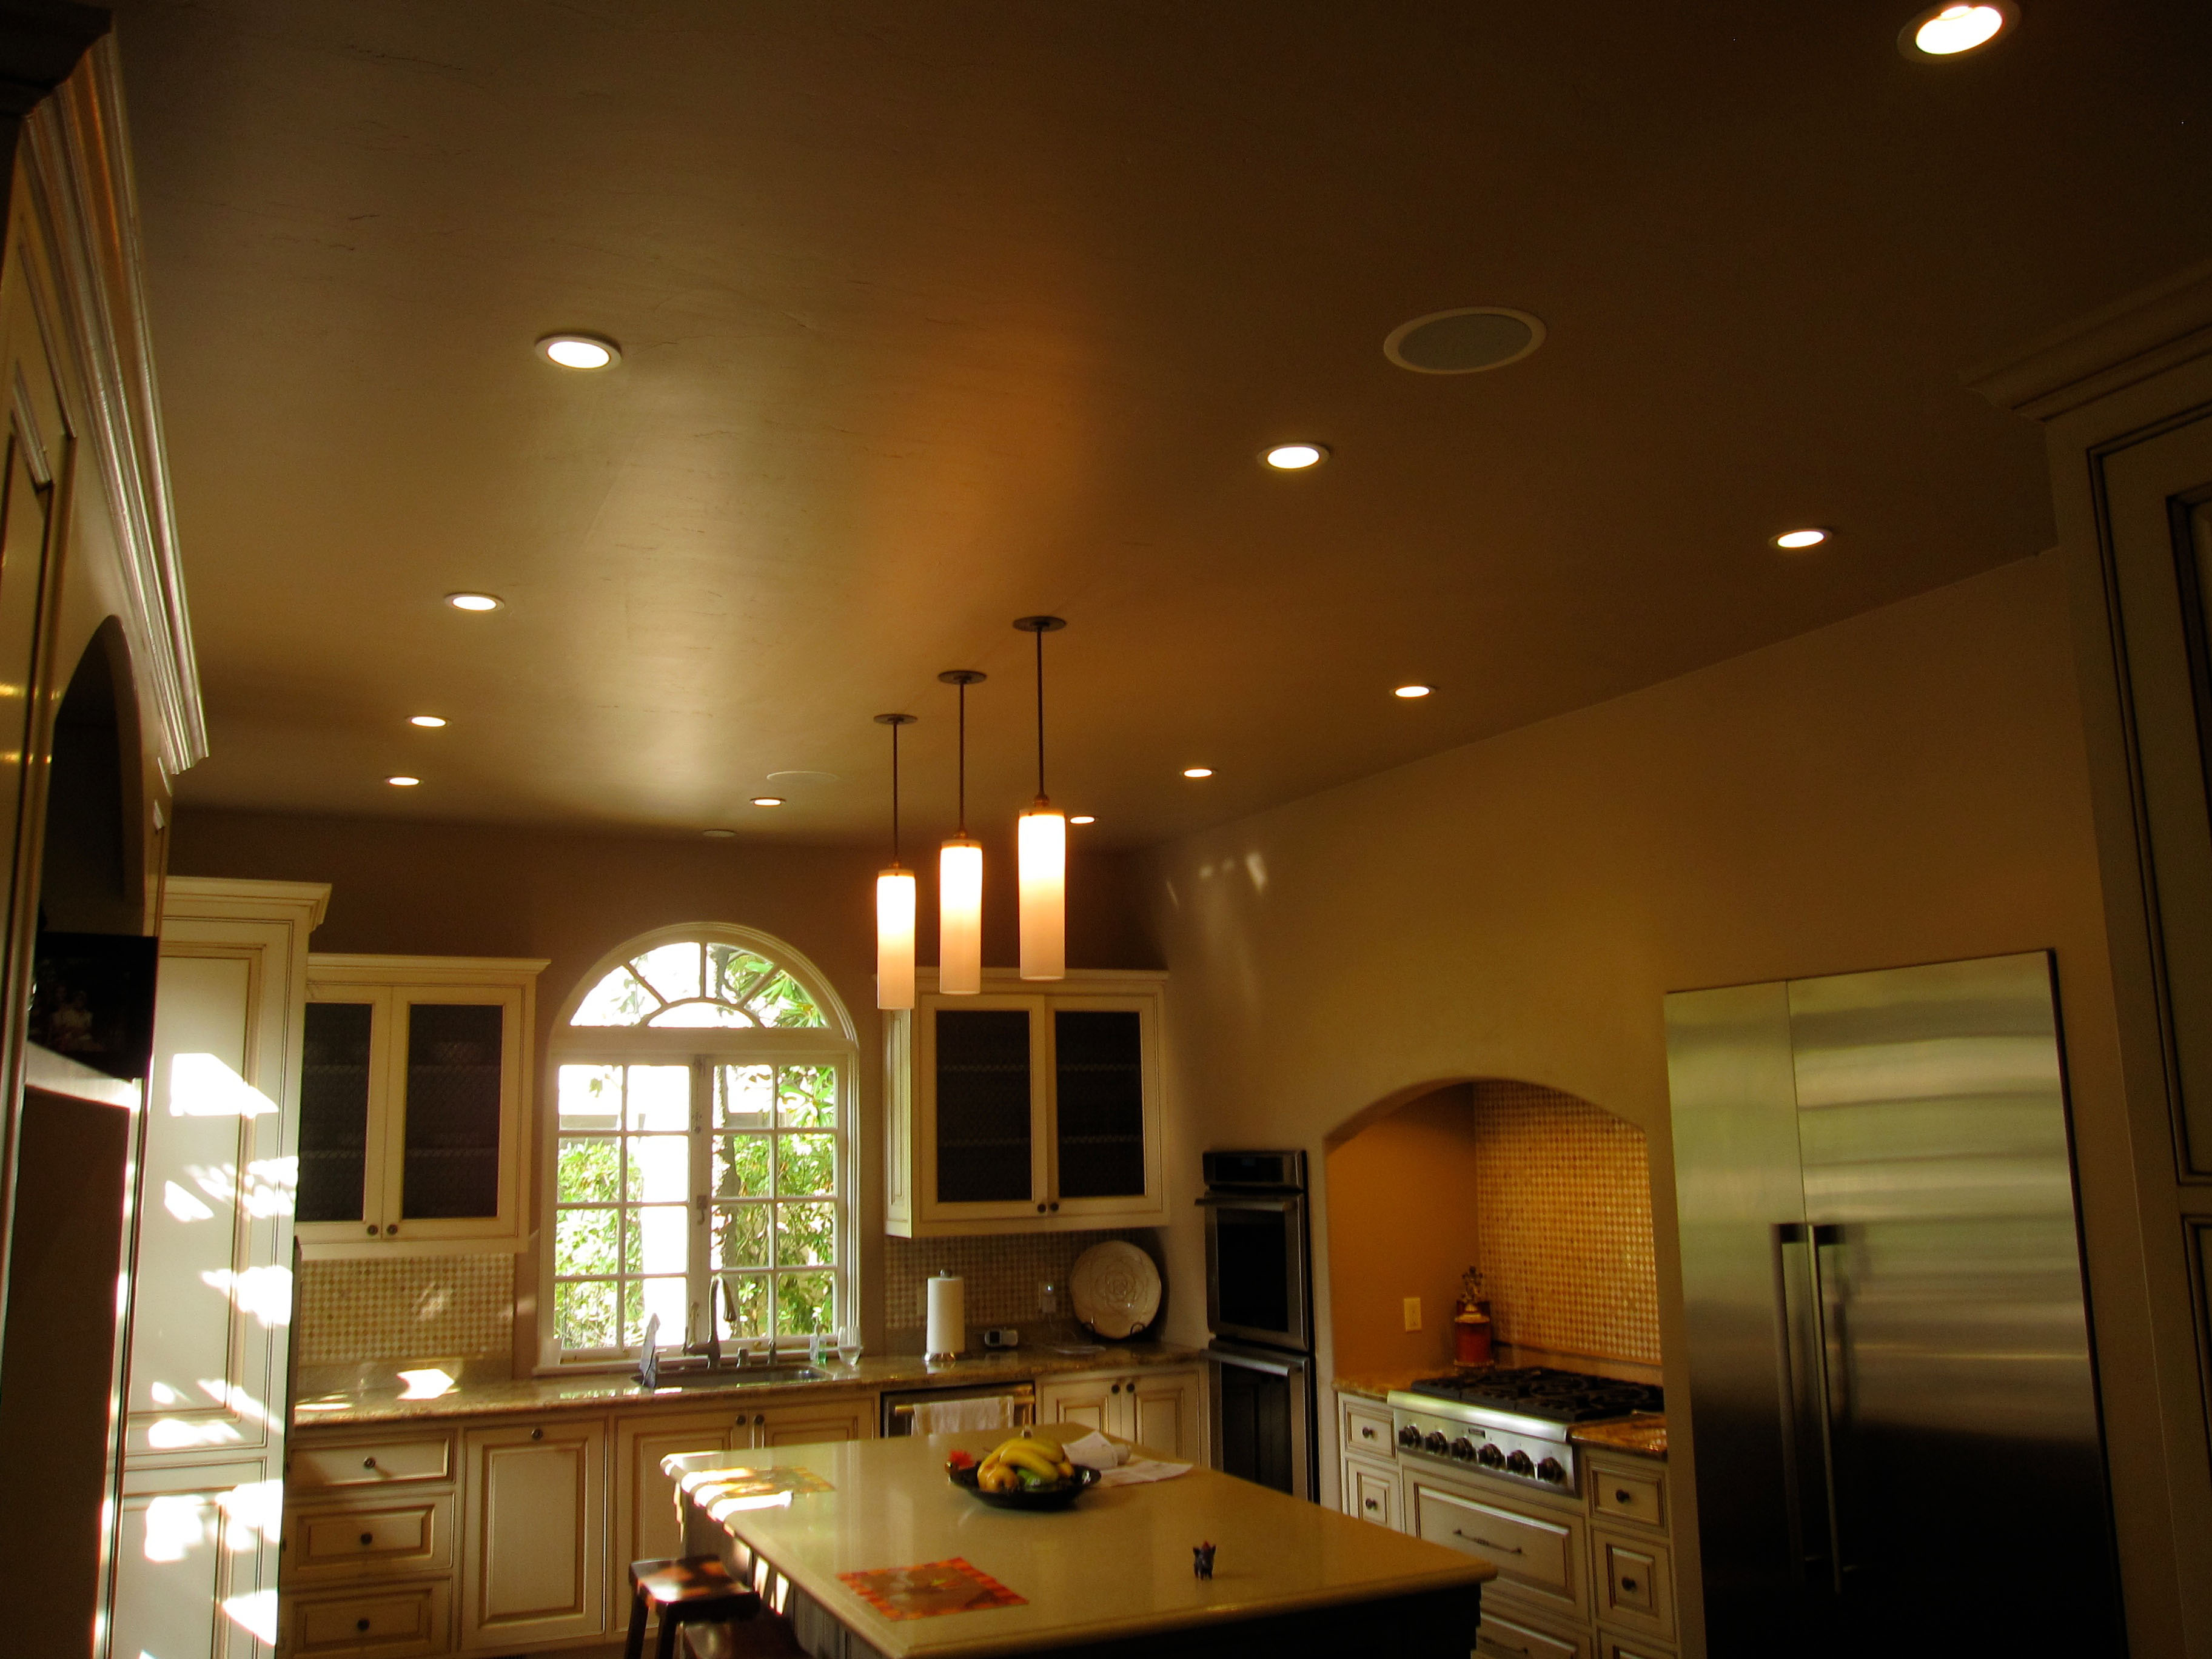 Interior Interior Lights Electrical Installation And